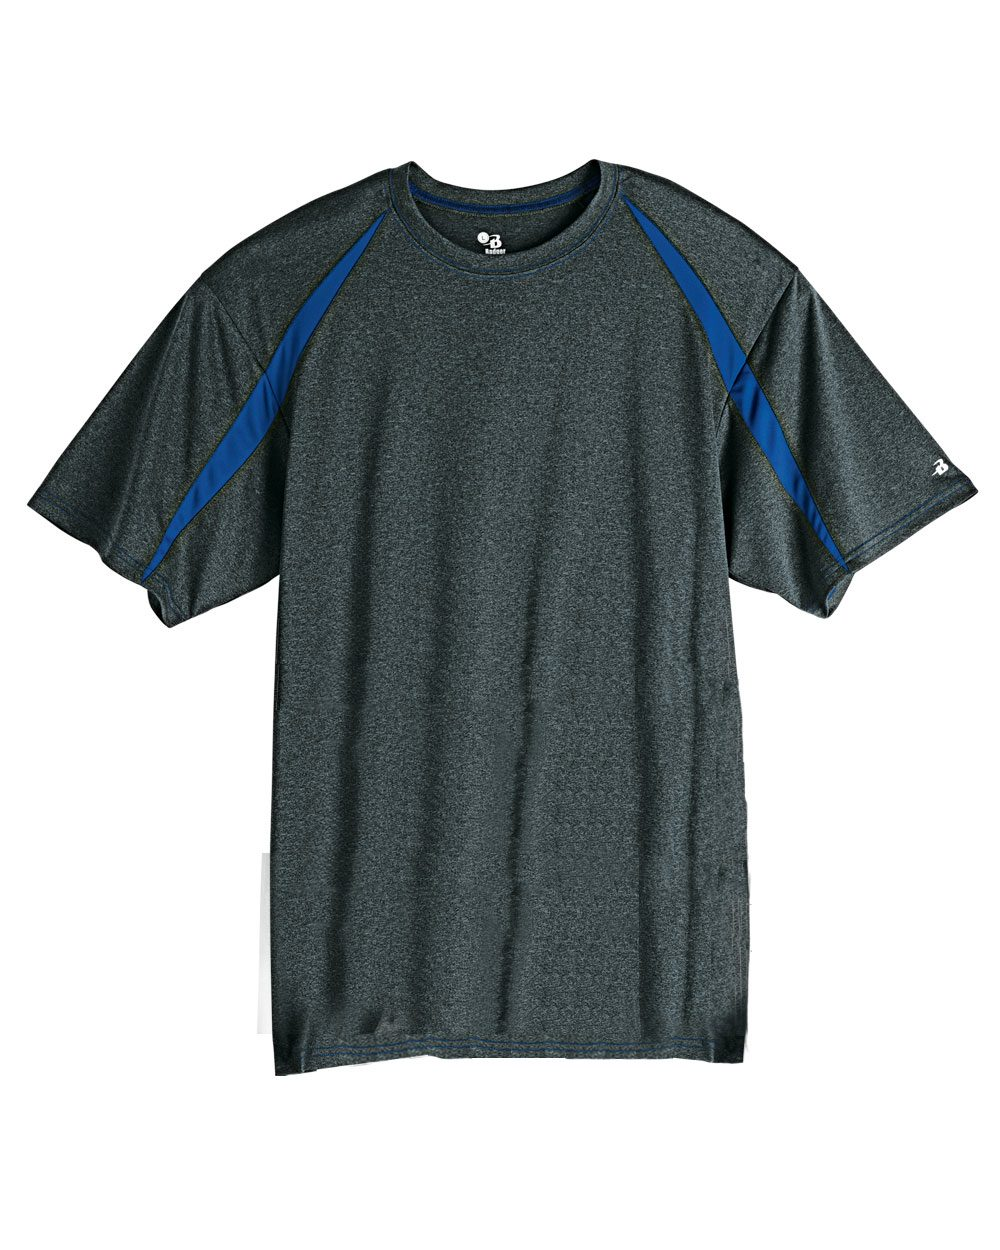 9c98f17d Badger Sport Fusion Colorblock Short Sleeve T-Shirt - 4340 $14.24 - Men's T- Shirts